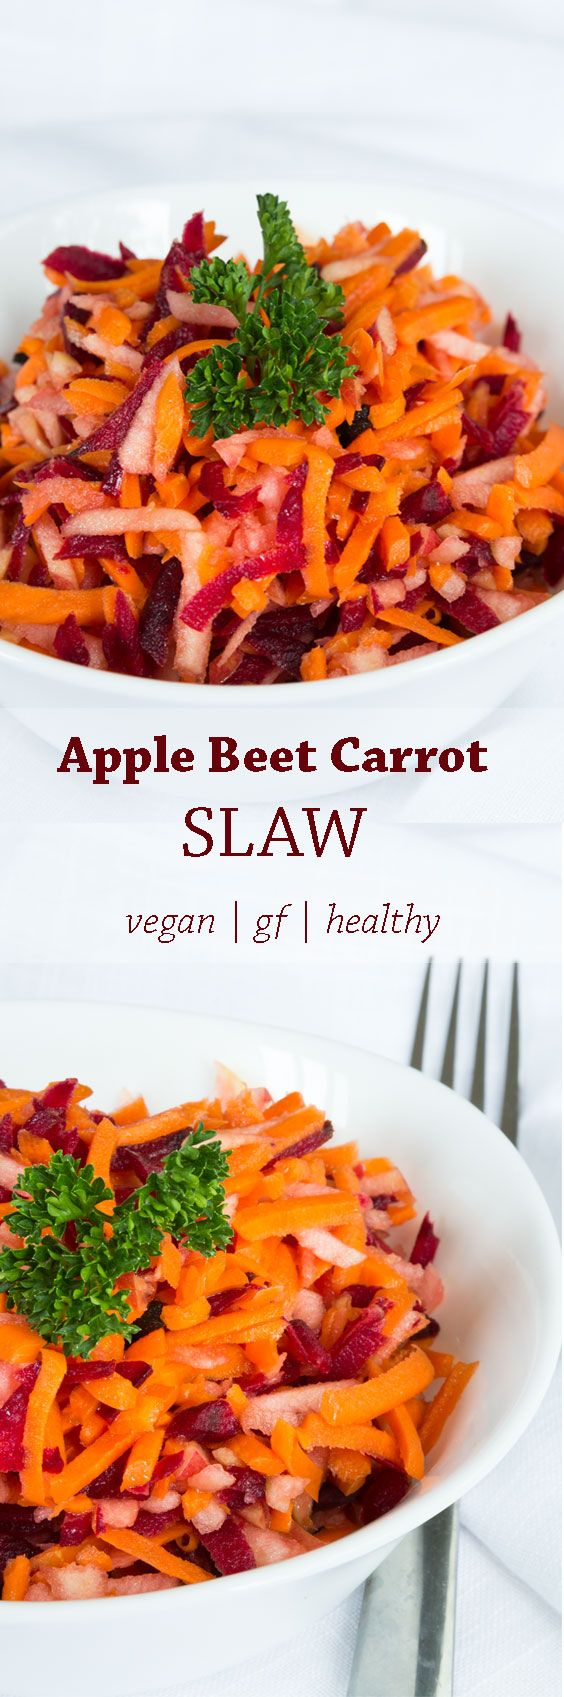 Apple Beet Carrot Slaw with Honey Dressing that is crisp, vibrant, and full of flavor. The original recipe comes from Joy McCarthy's book Joyous Health.